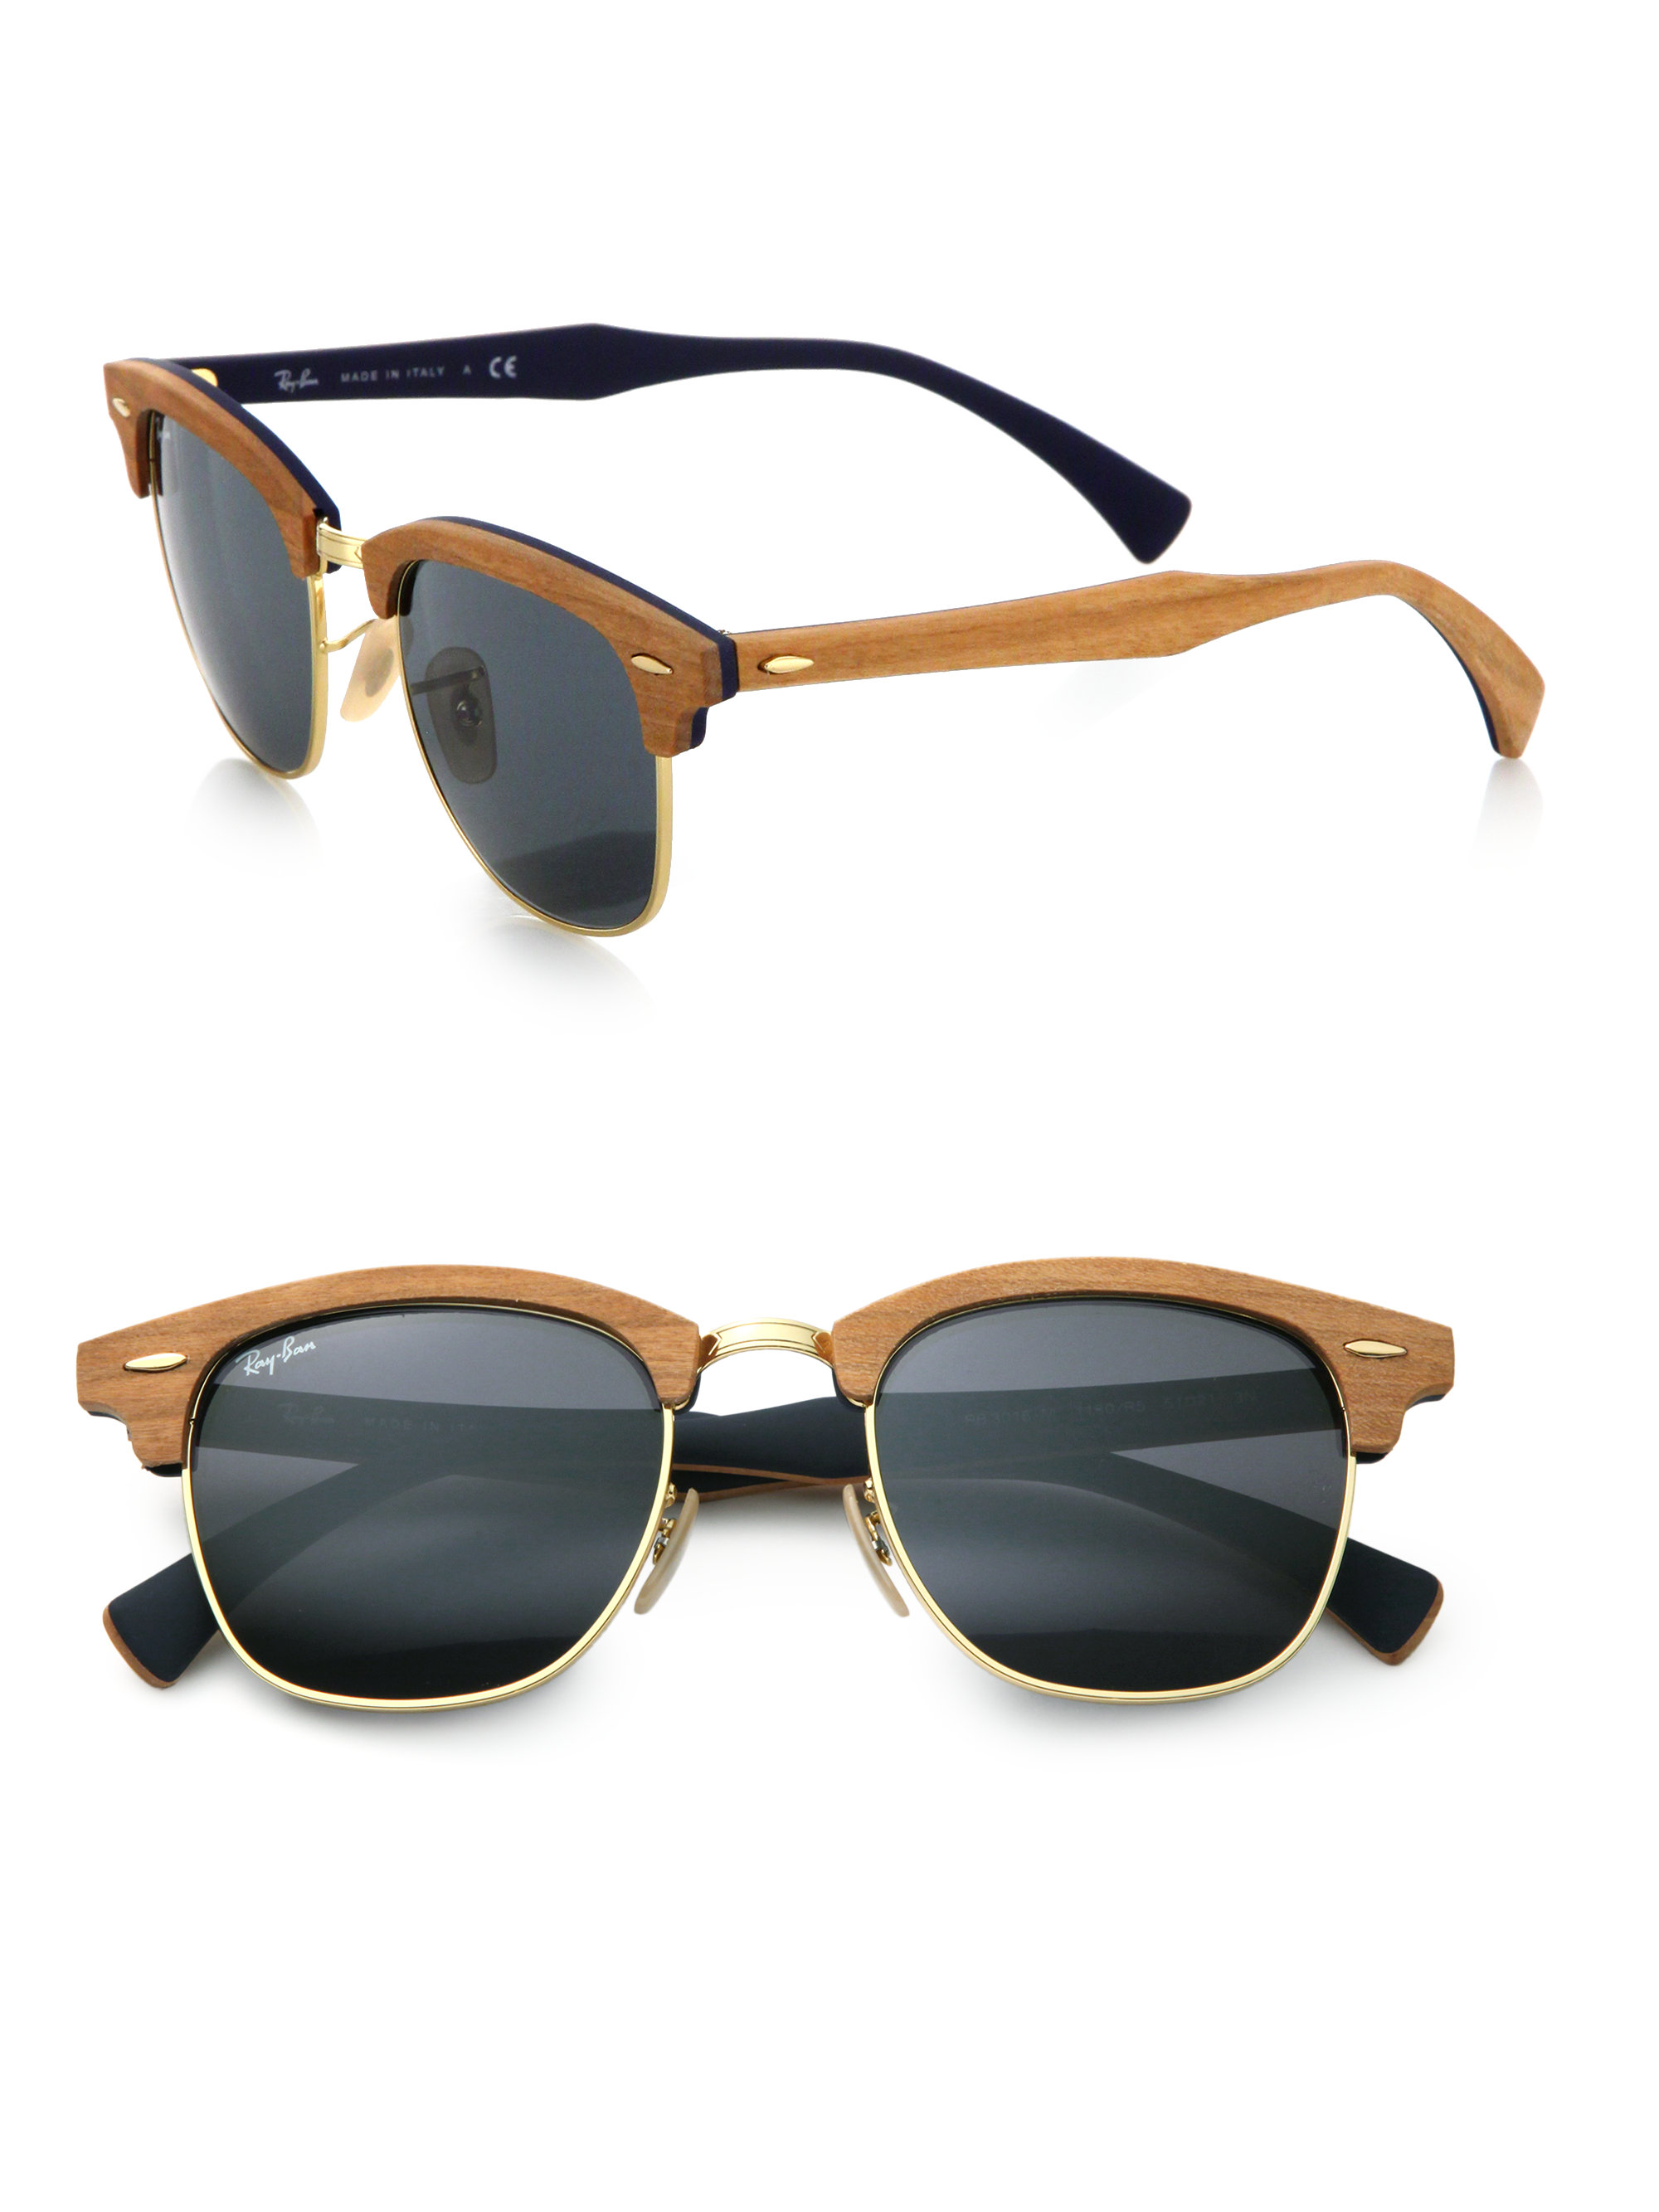 ray ban clubmaster ii sunglasses  gallery. previously sold at: saks fifth avenue · men's ray ban clubmaster